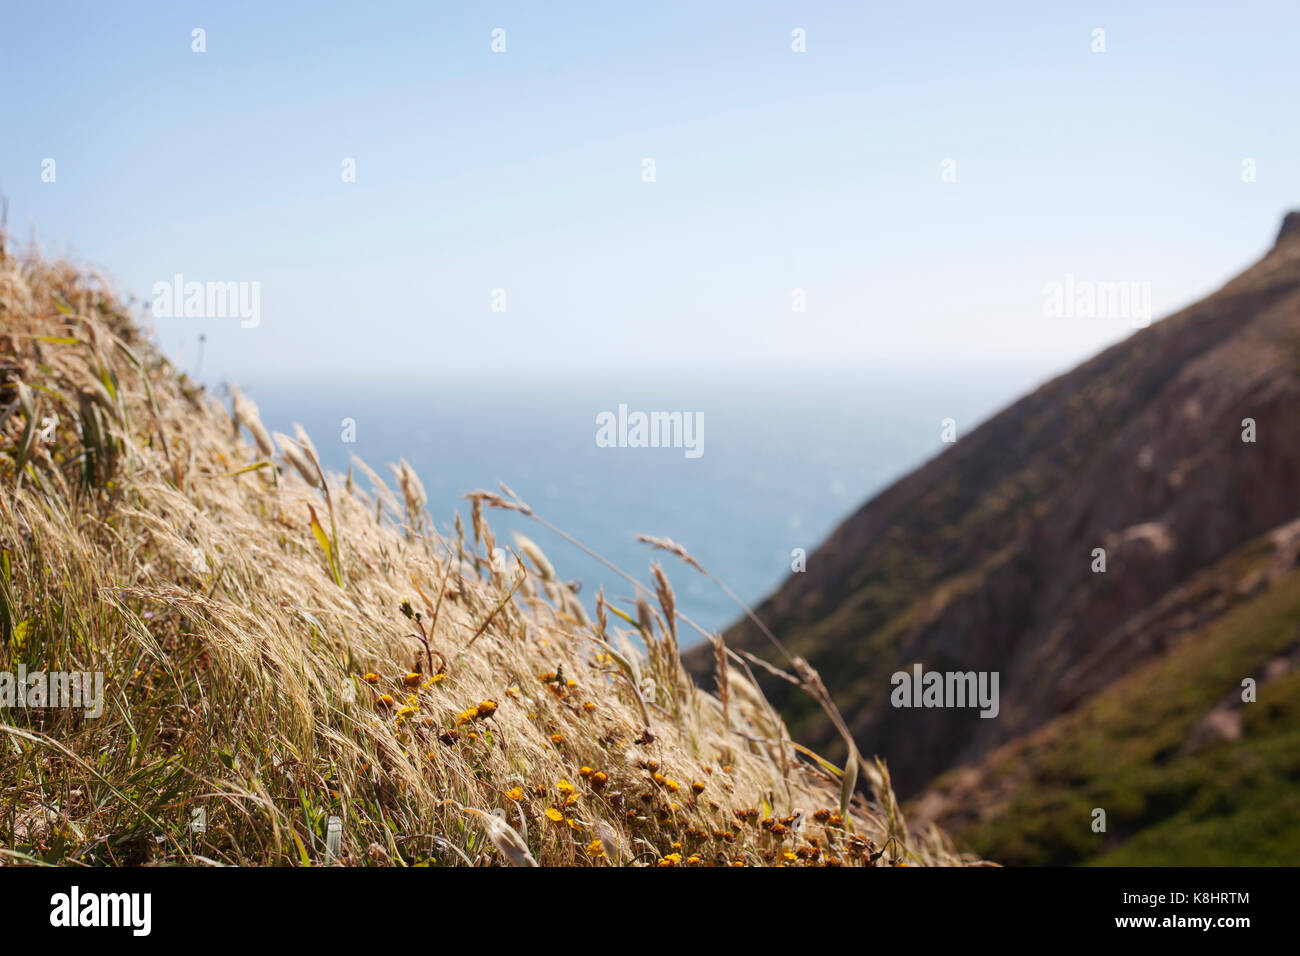 Dried plants against sea and sky - Stock Image